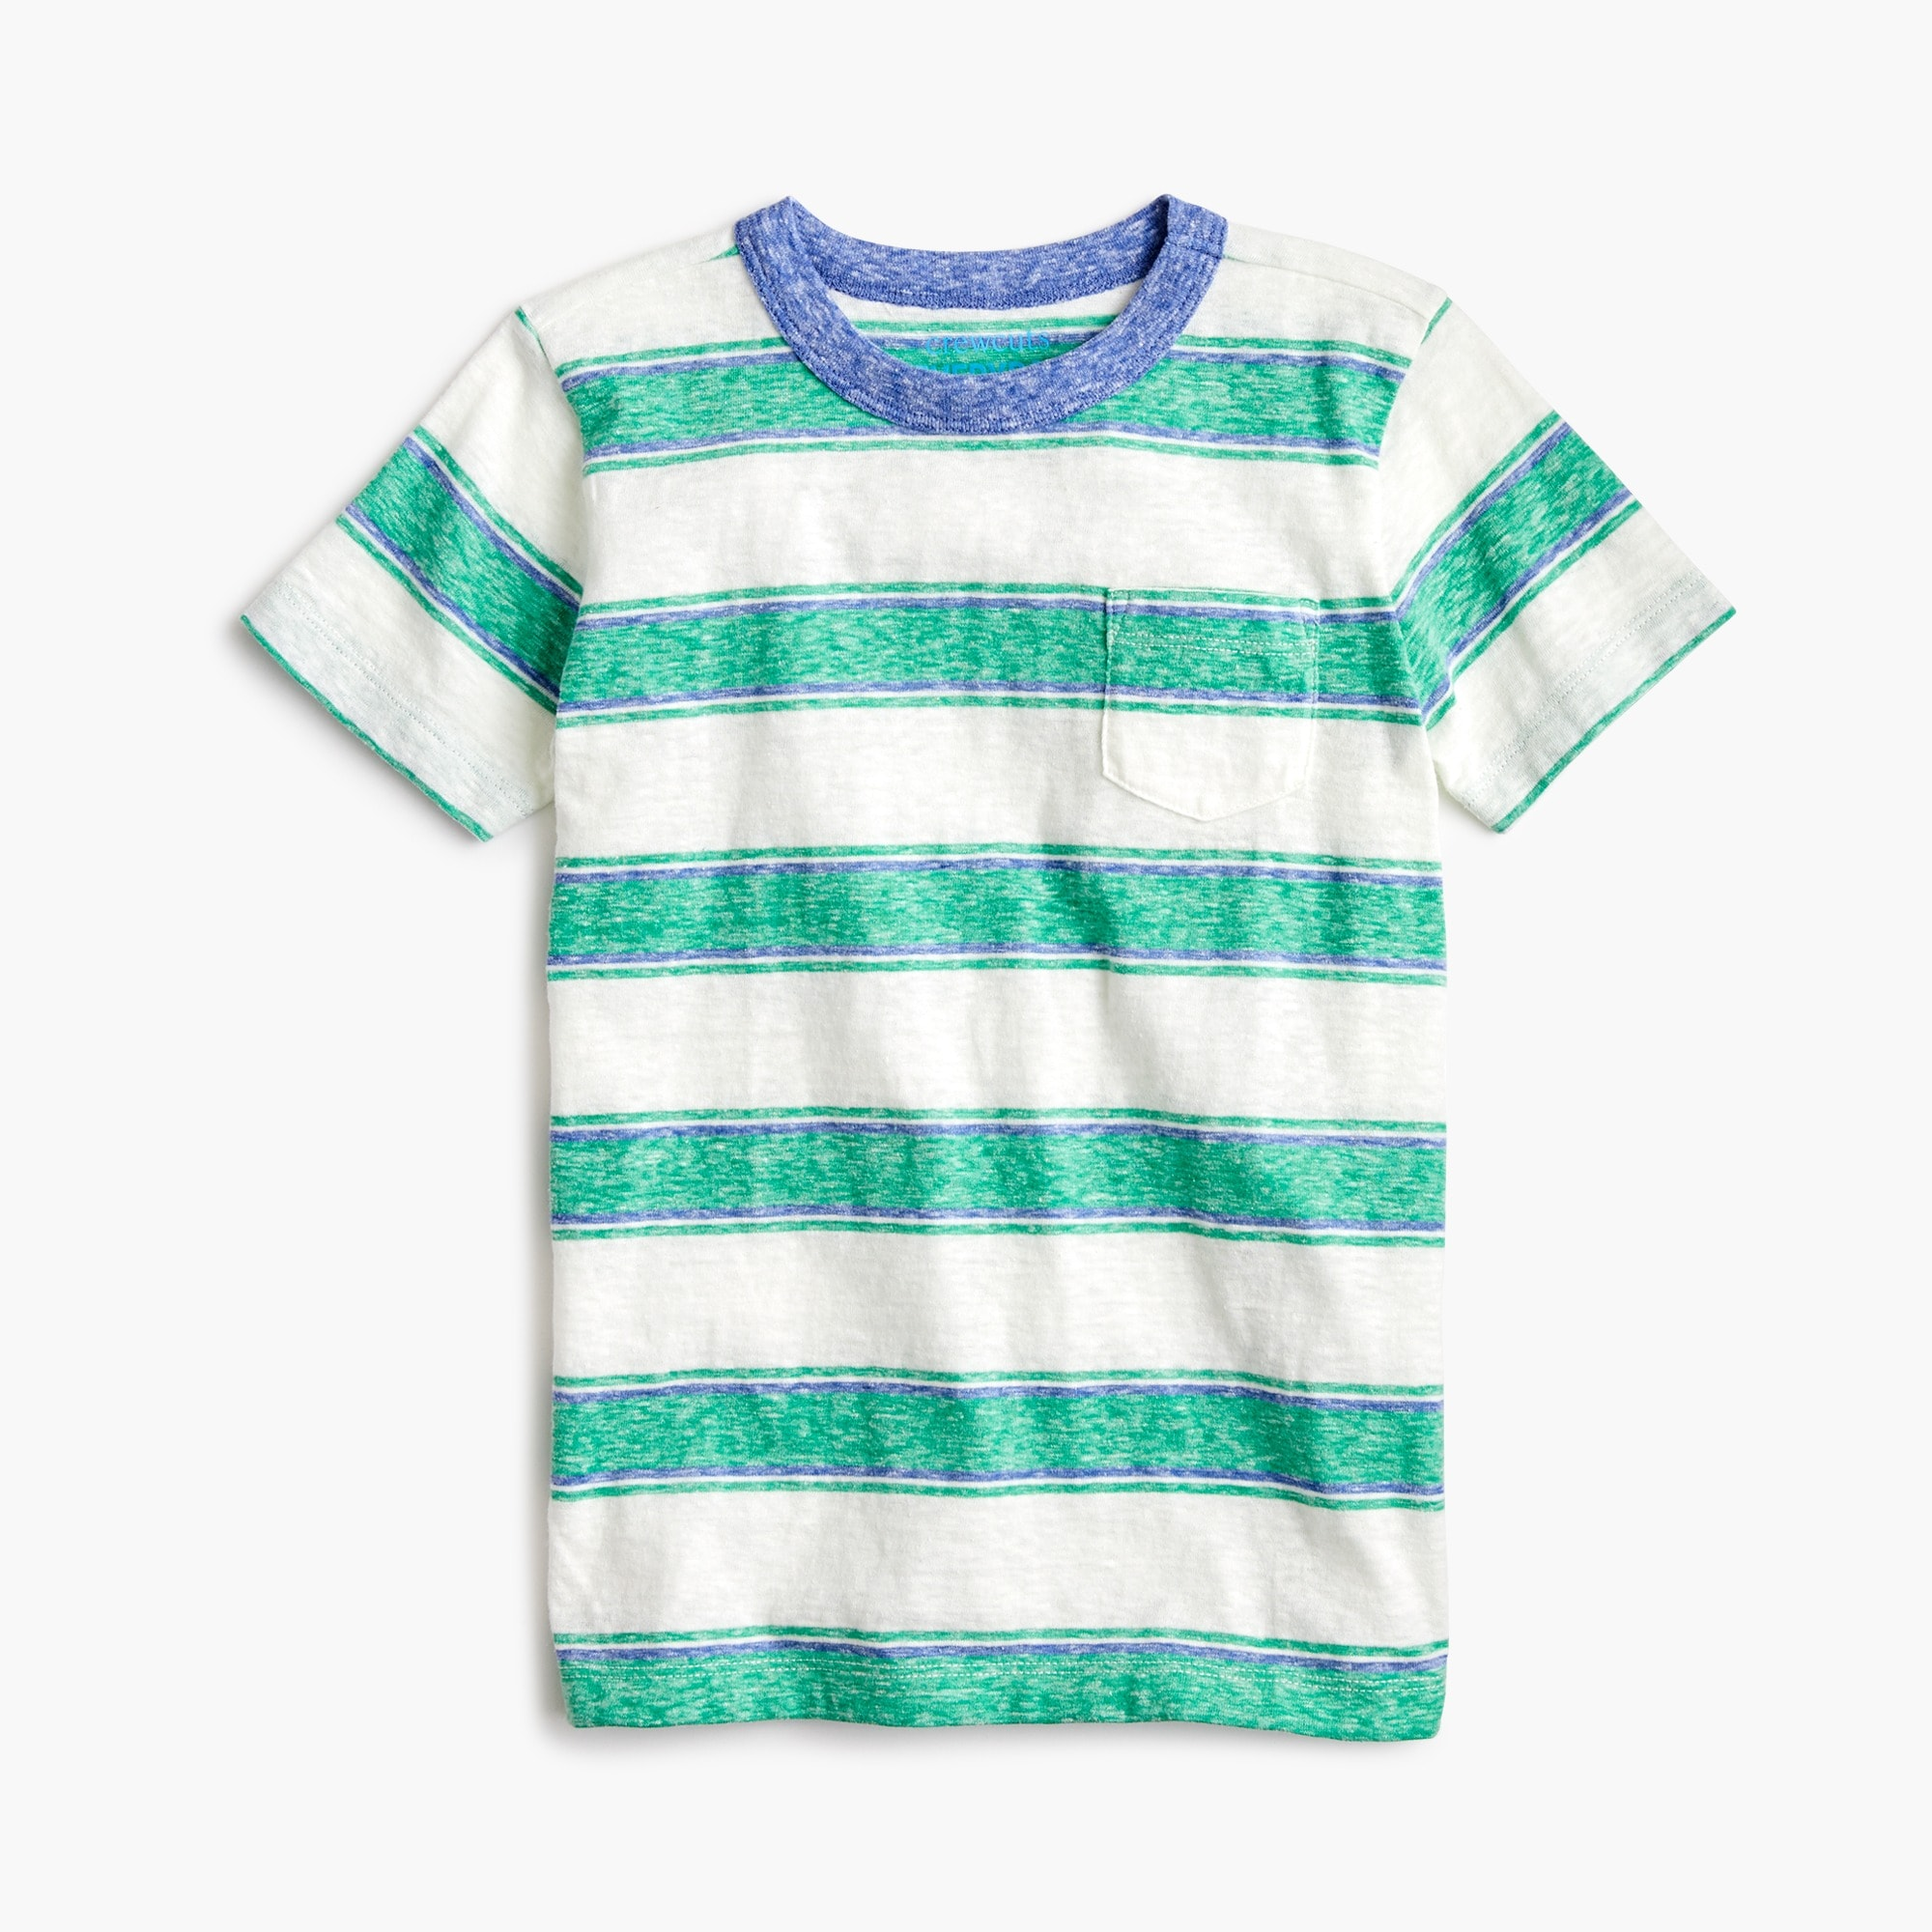 boys Boys' striped T-shirt in the softest jersey